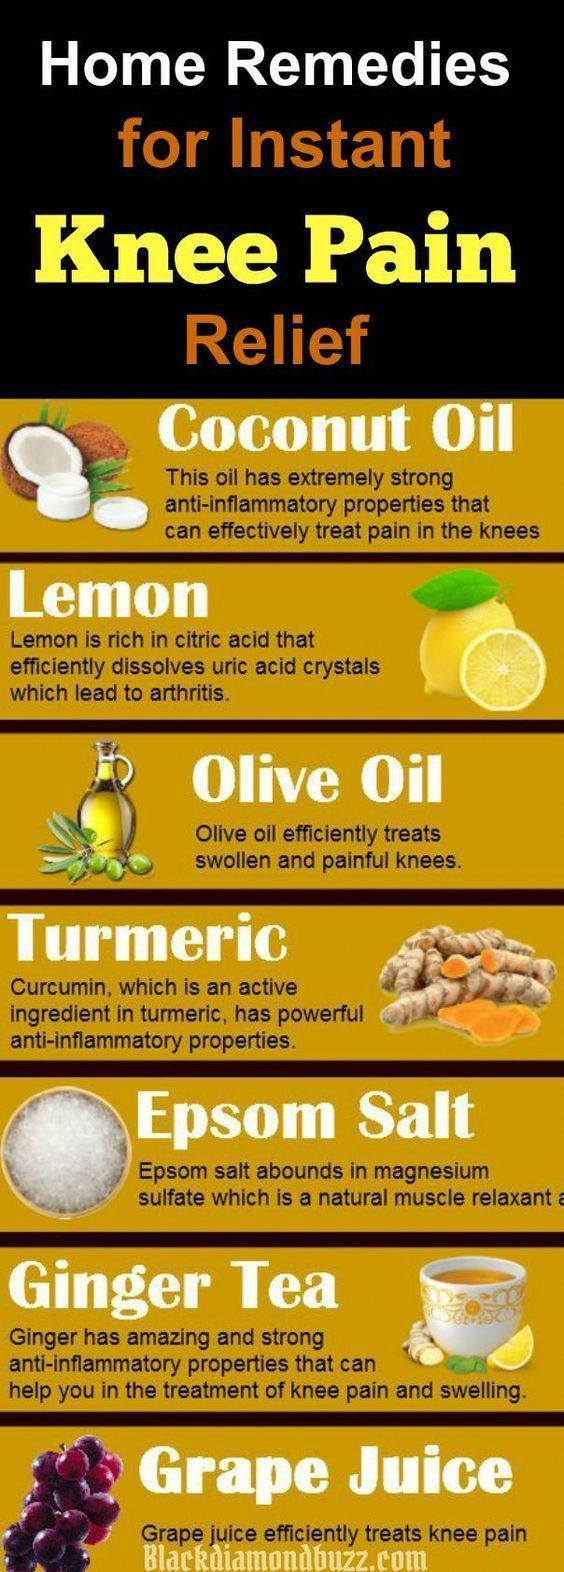 Home Remedies For Knee Pain Relief These Home Remedies Are